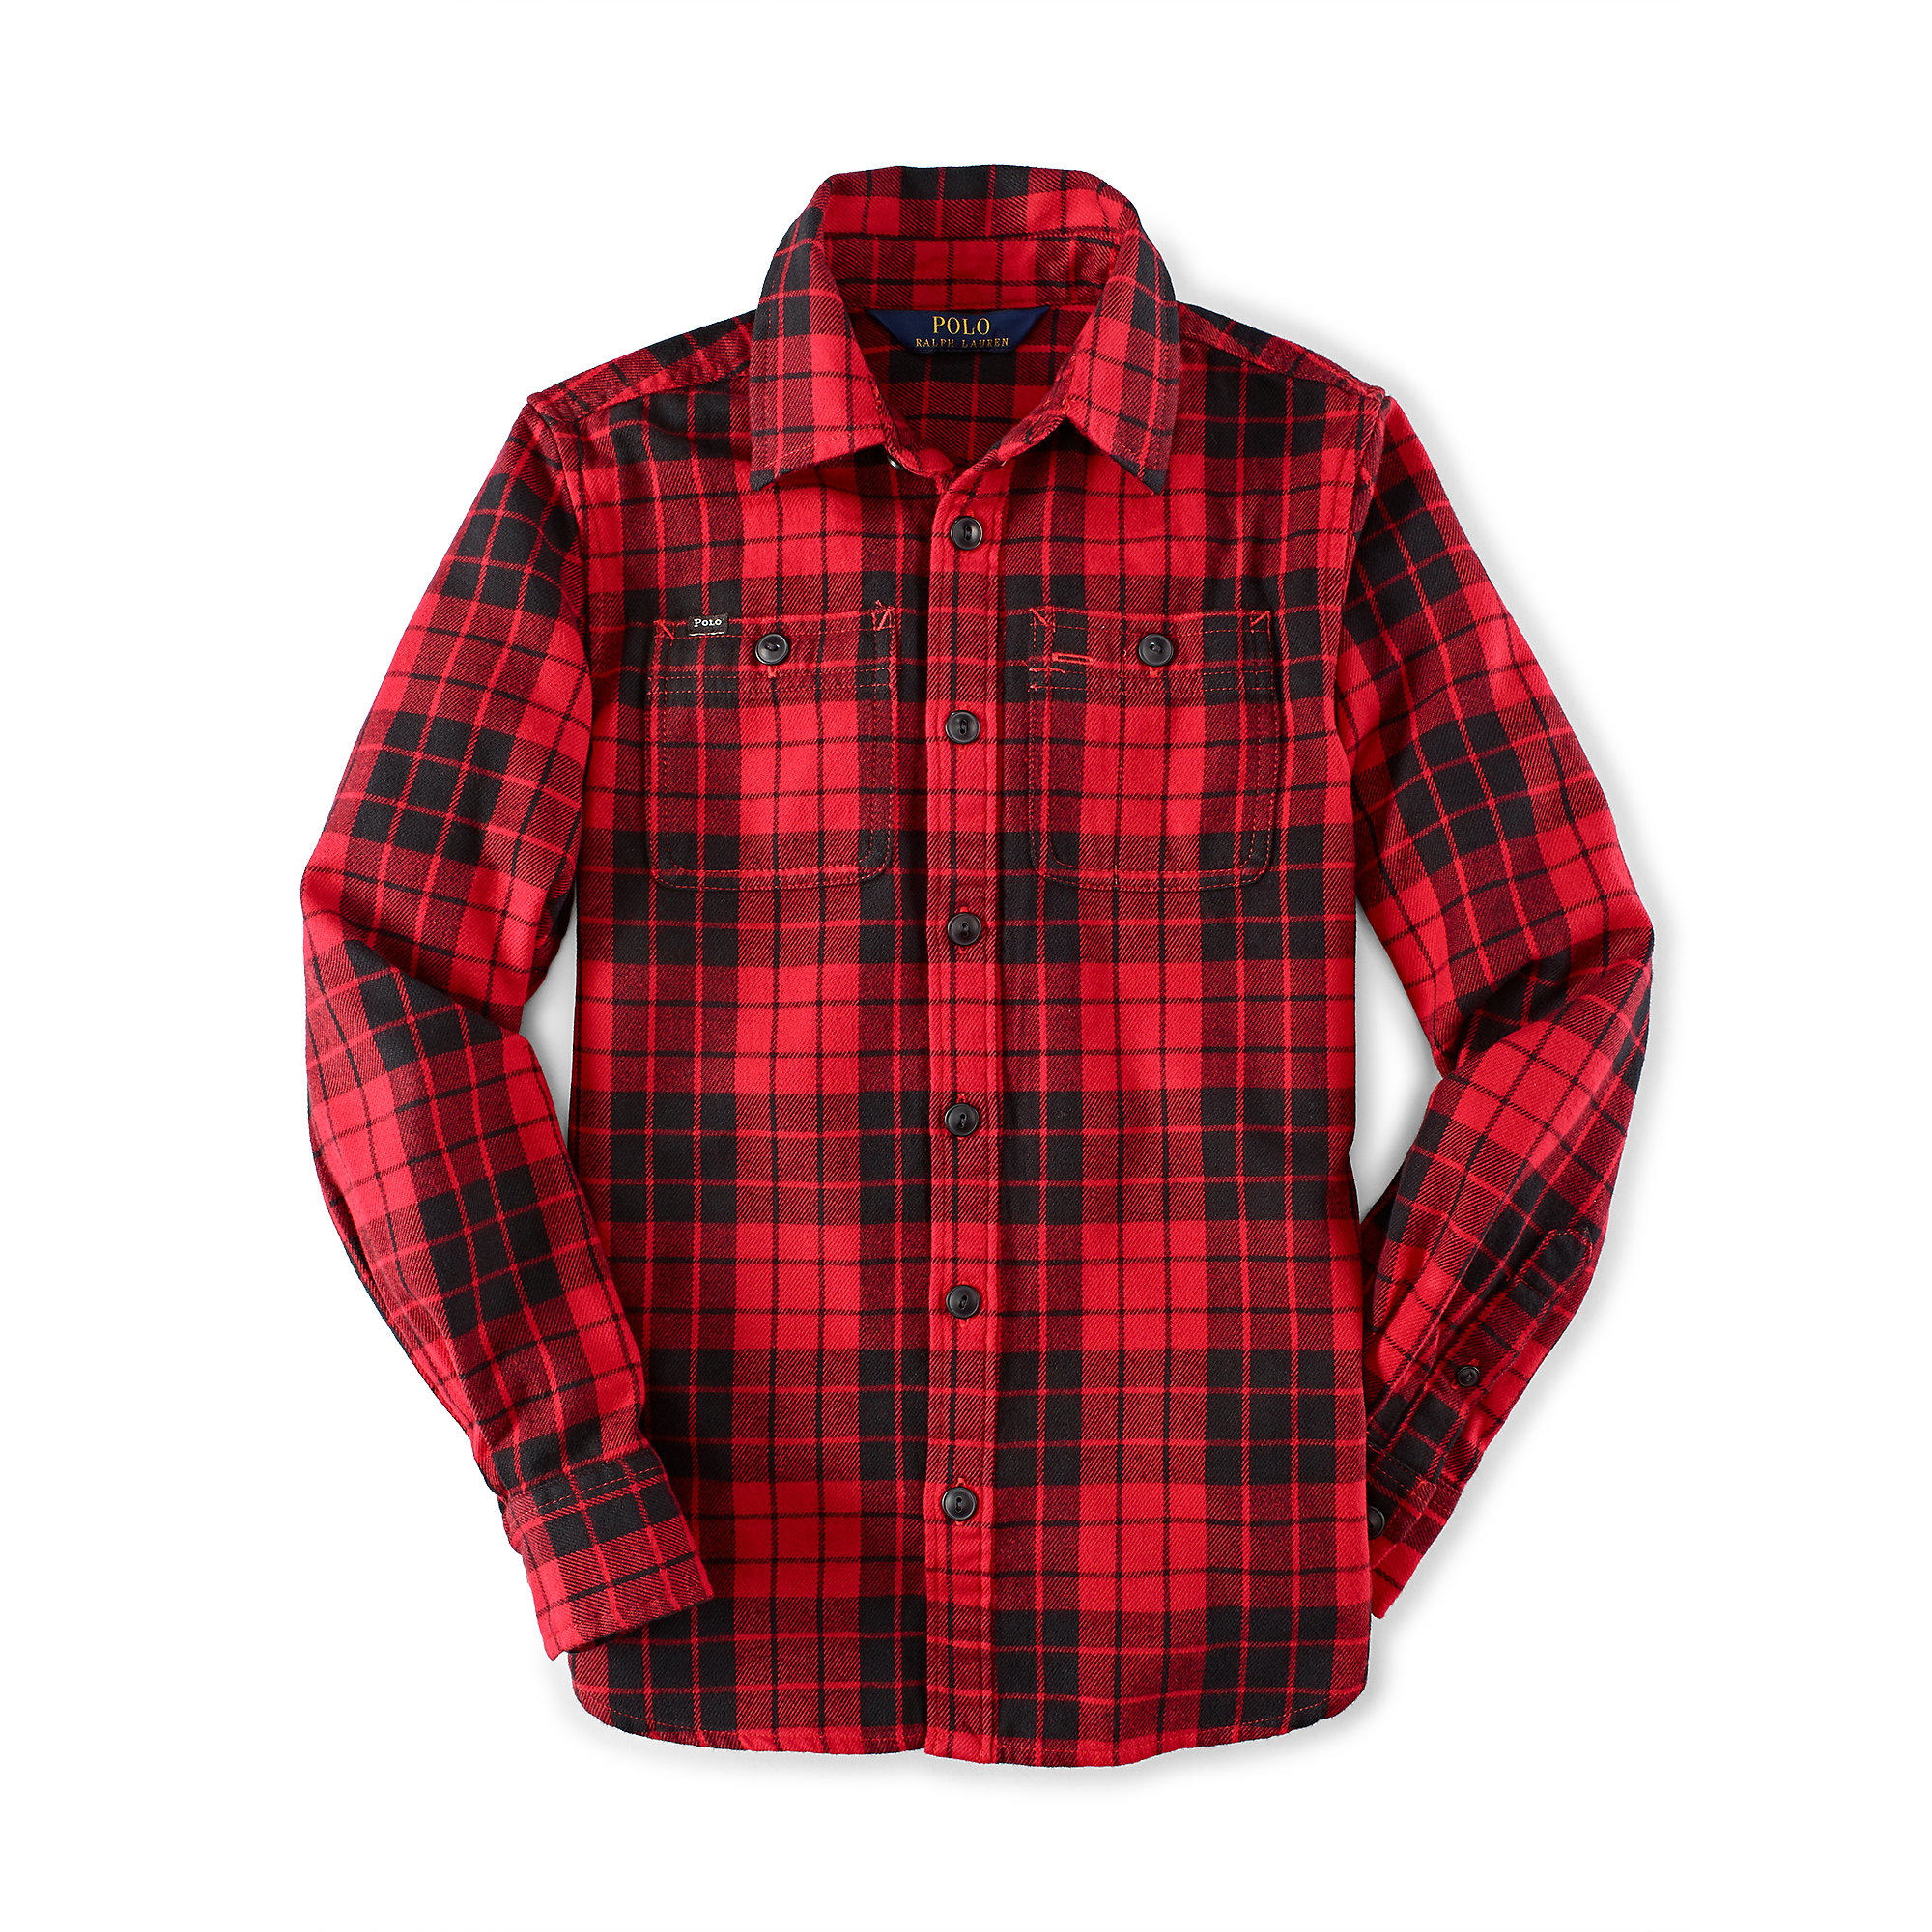 Looking for a Red Plaid Shirt? Find a Men's Red Plaid Shirt, Boys Red Plaid Shirt, Button Up Red Plaid Shirt and more at Macy's.